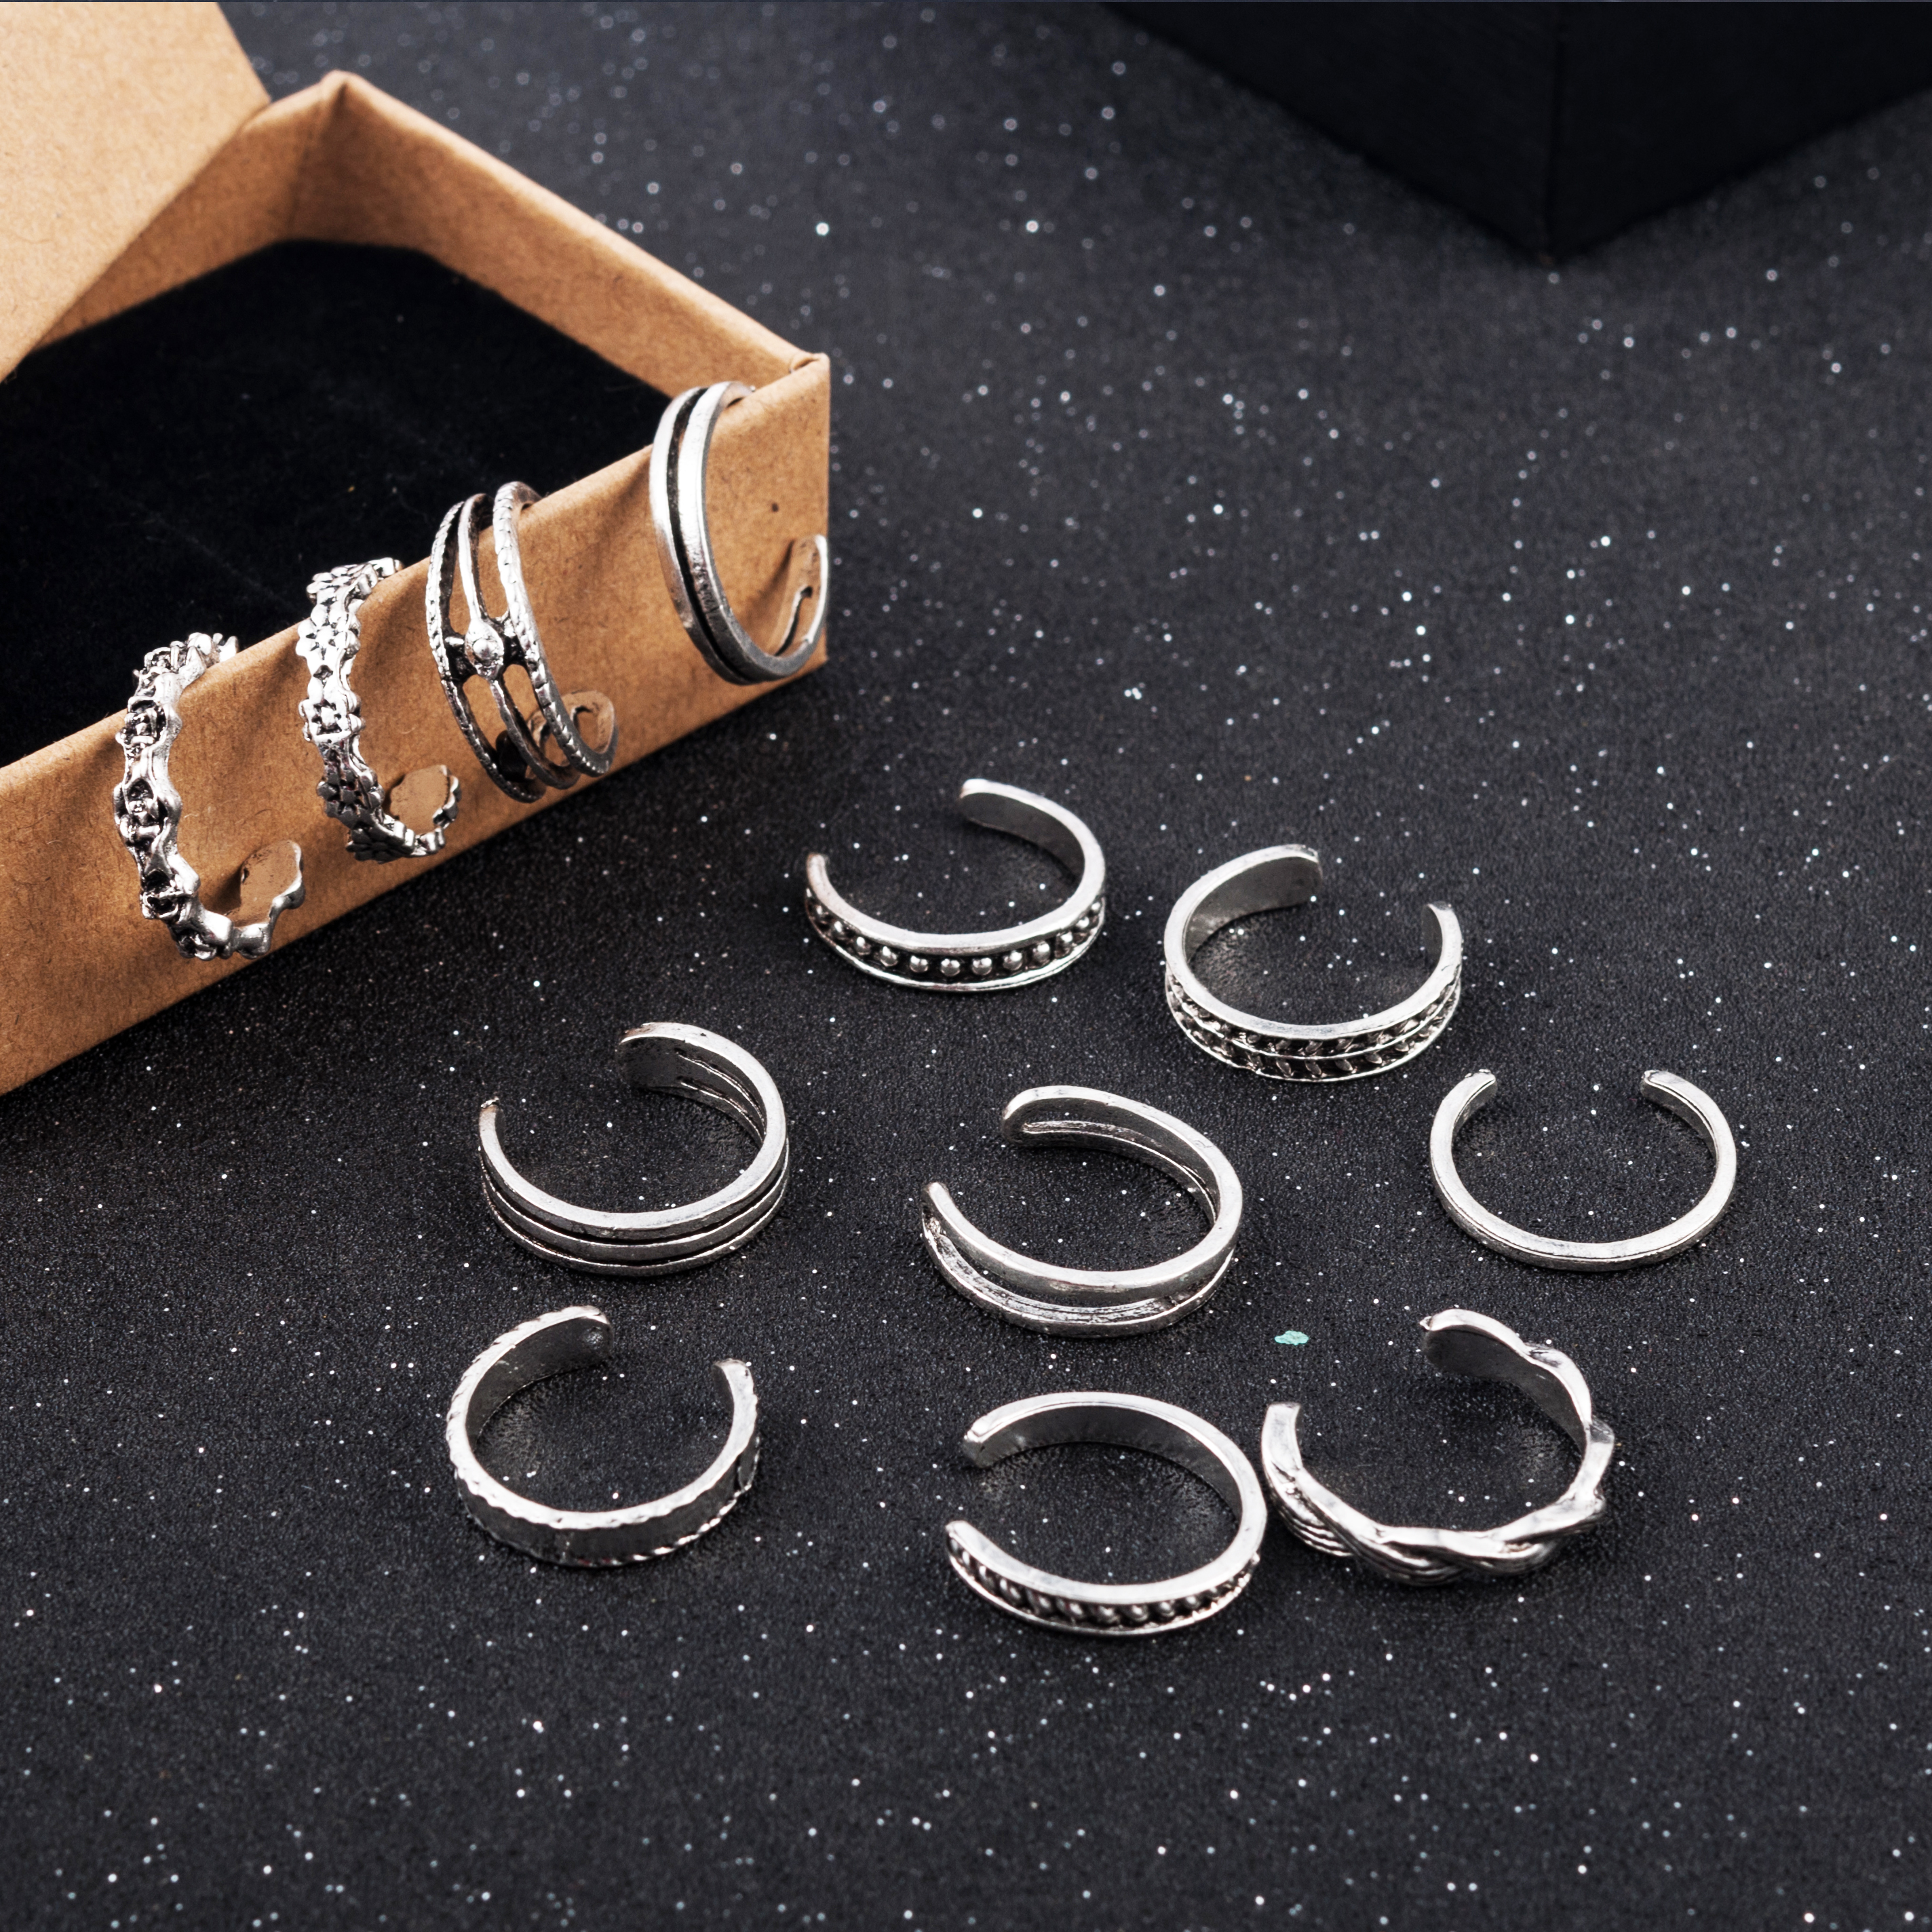 12PCs/set Women Lady Unique Adjustable Opening Finger Ring Retro Carved Toe Ring Foot Beach Foot Jewelry anillos mujer 2